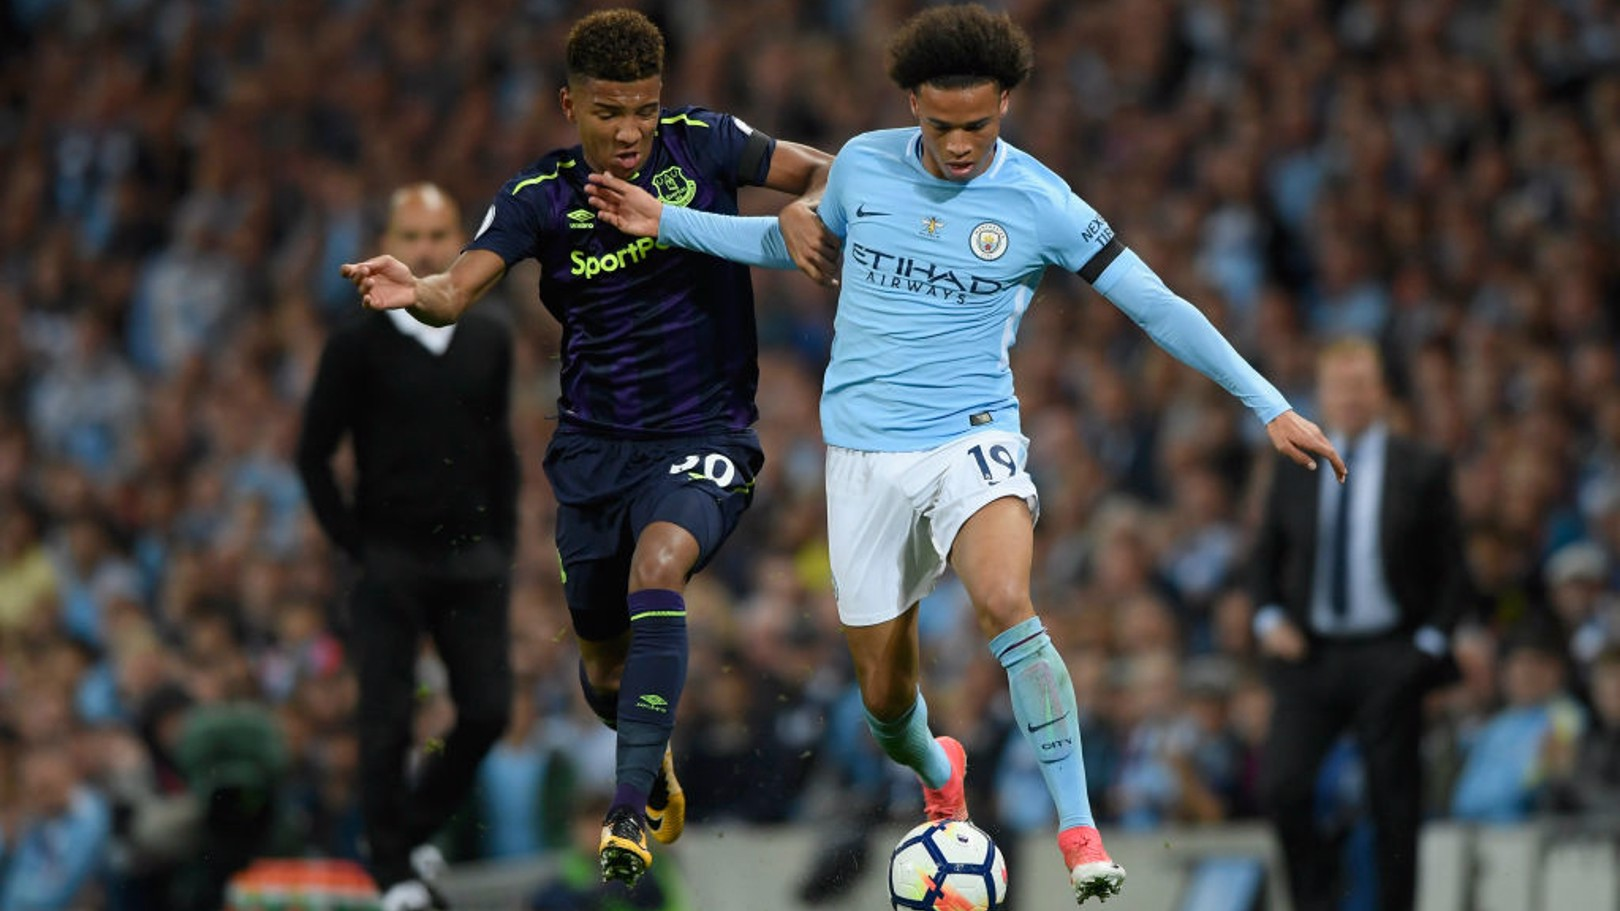 BREAKING FORWARD: Leroy Sane goes on the attack.